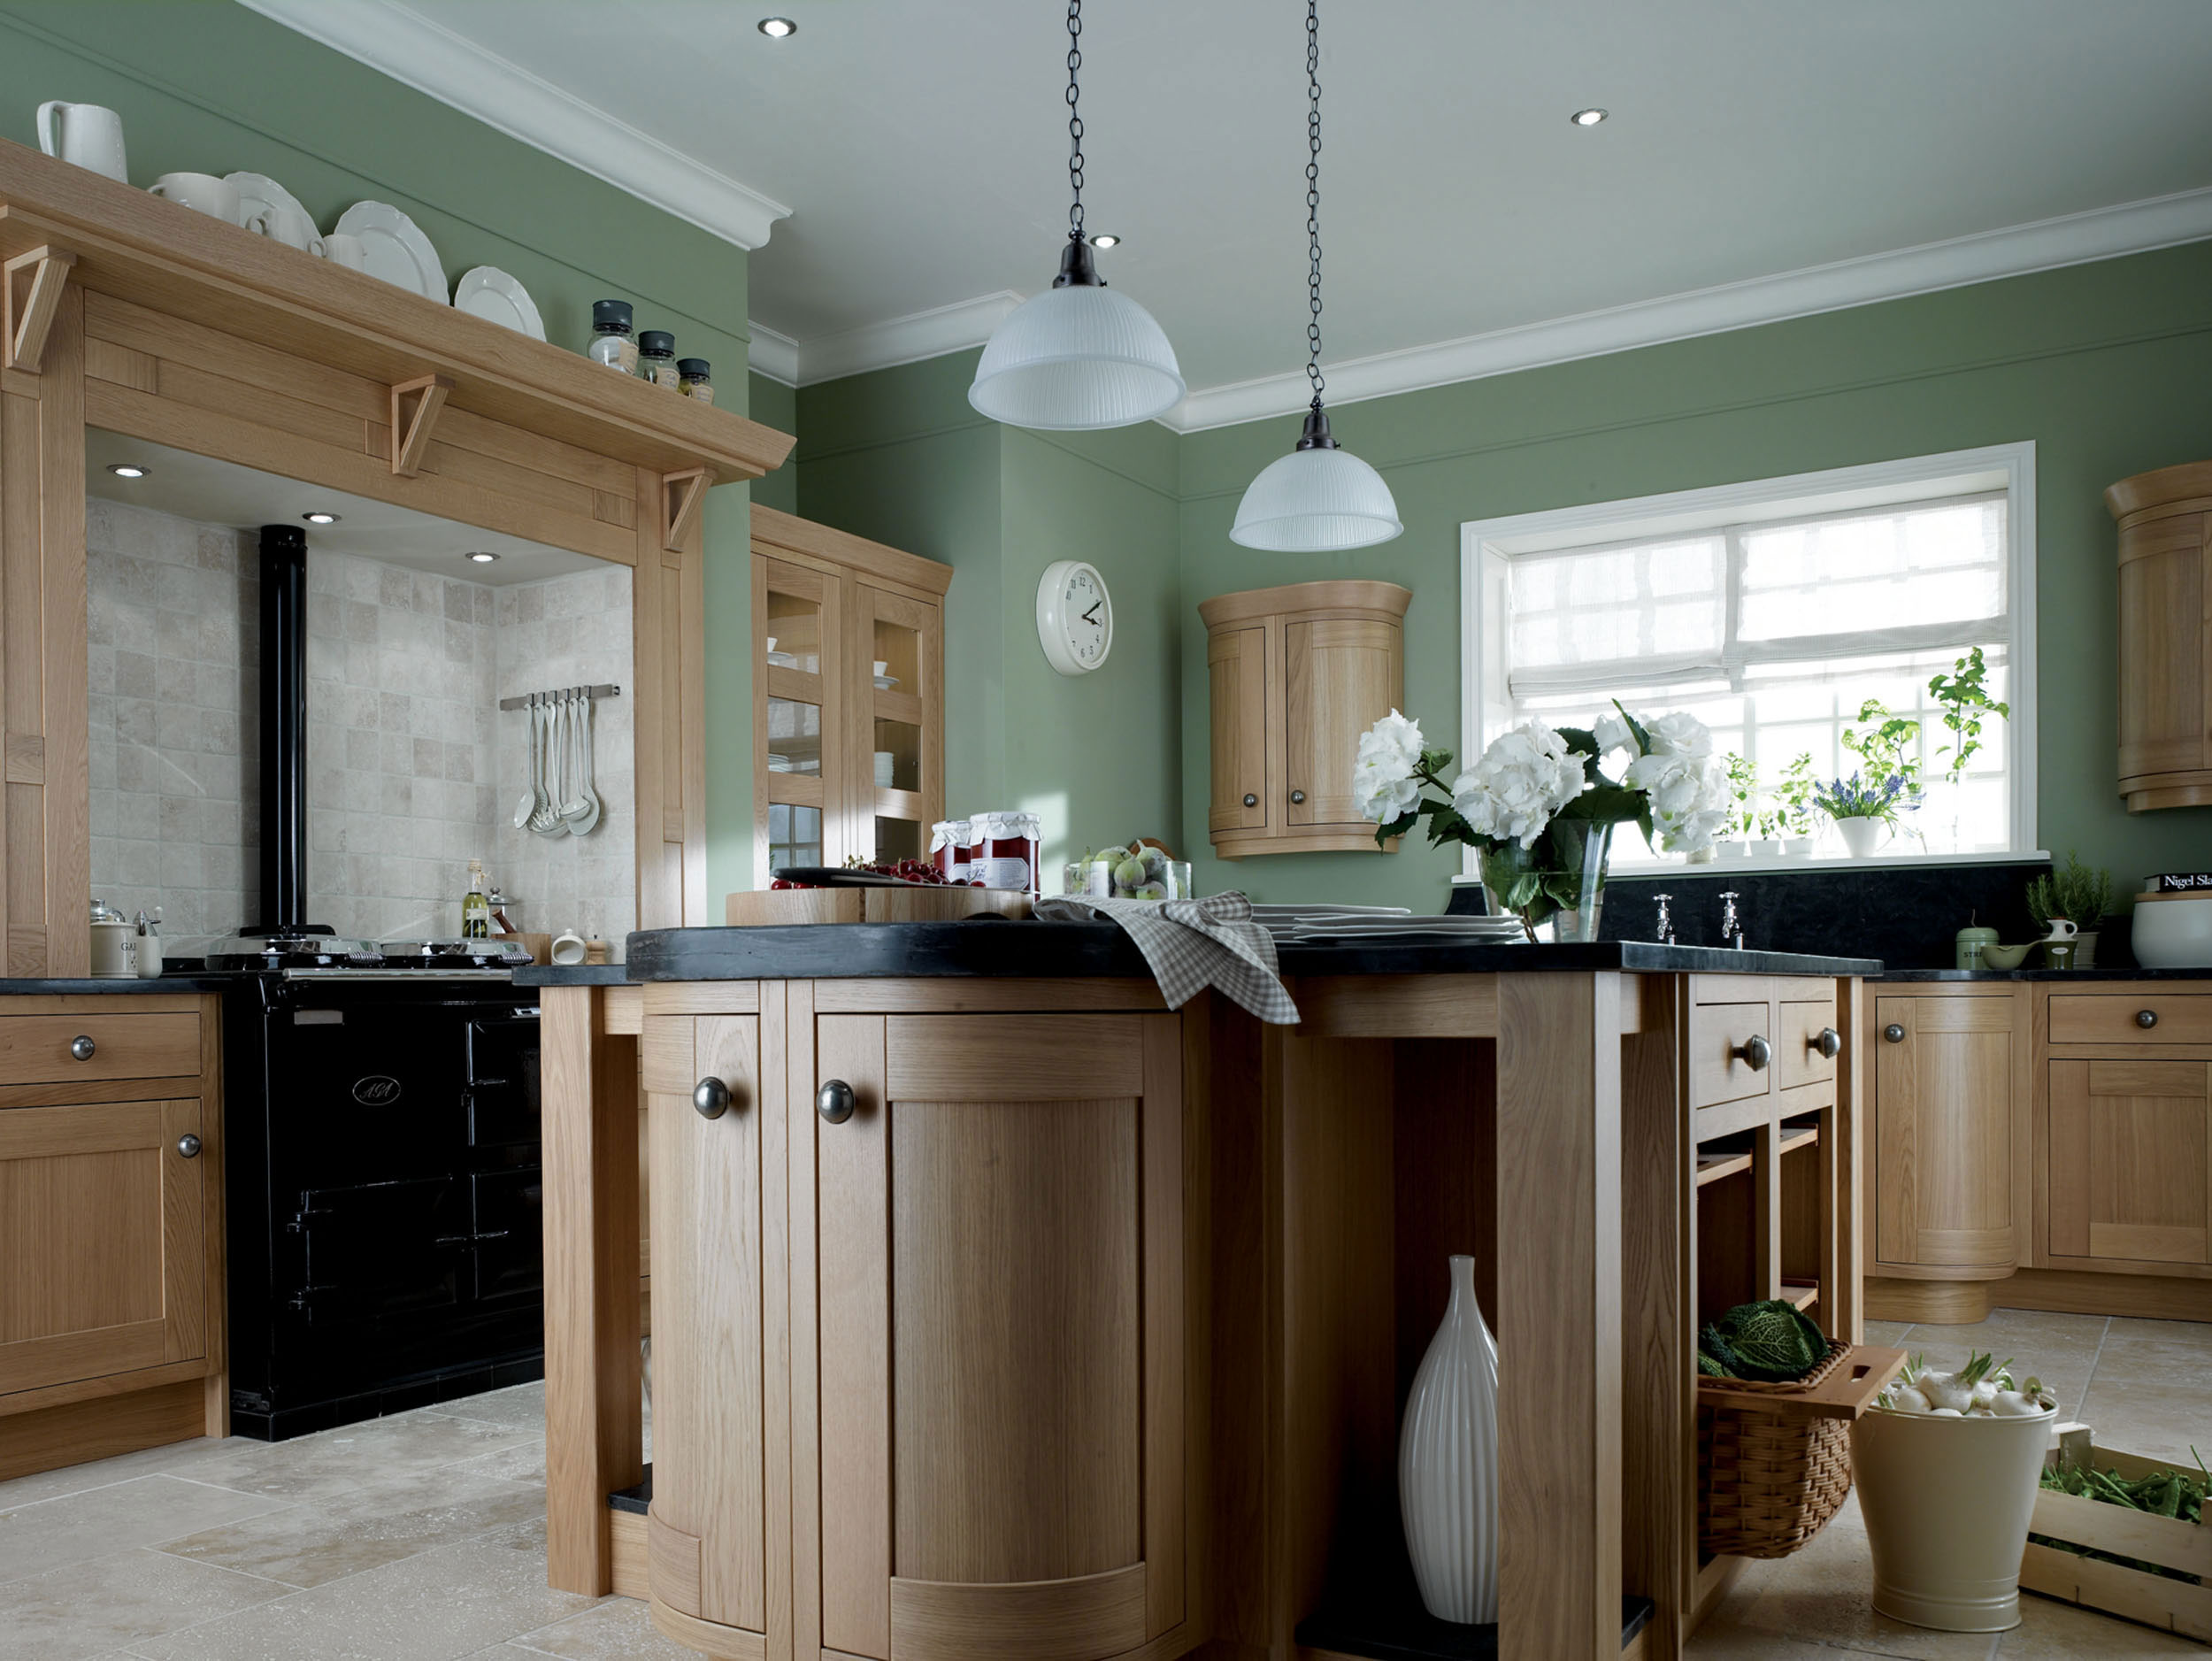 © Eaton Kitchen Design Web Design By Betelguise Web . Full resolution‎  image, nominally Width 2500 Height 1877 pixels, image with #282016.